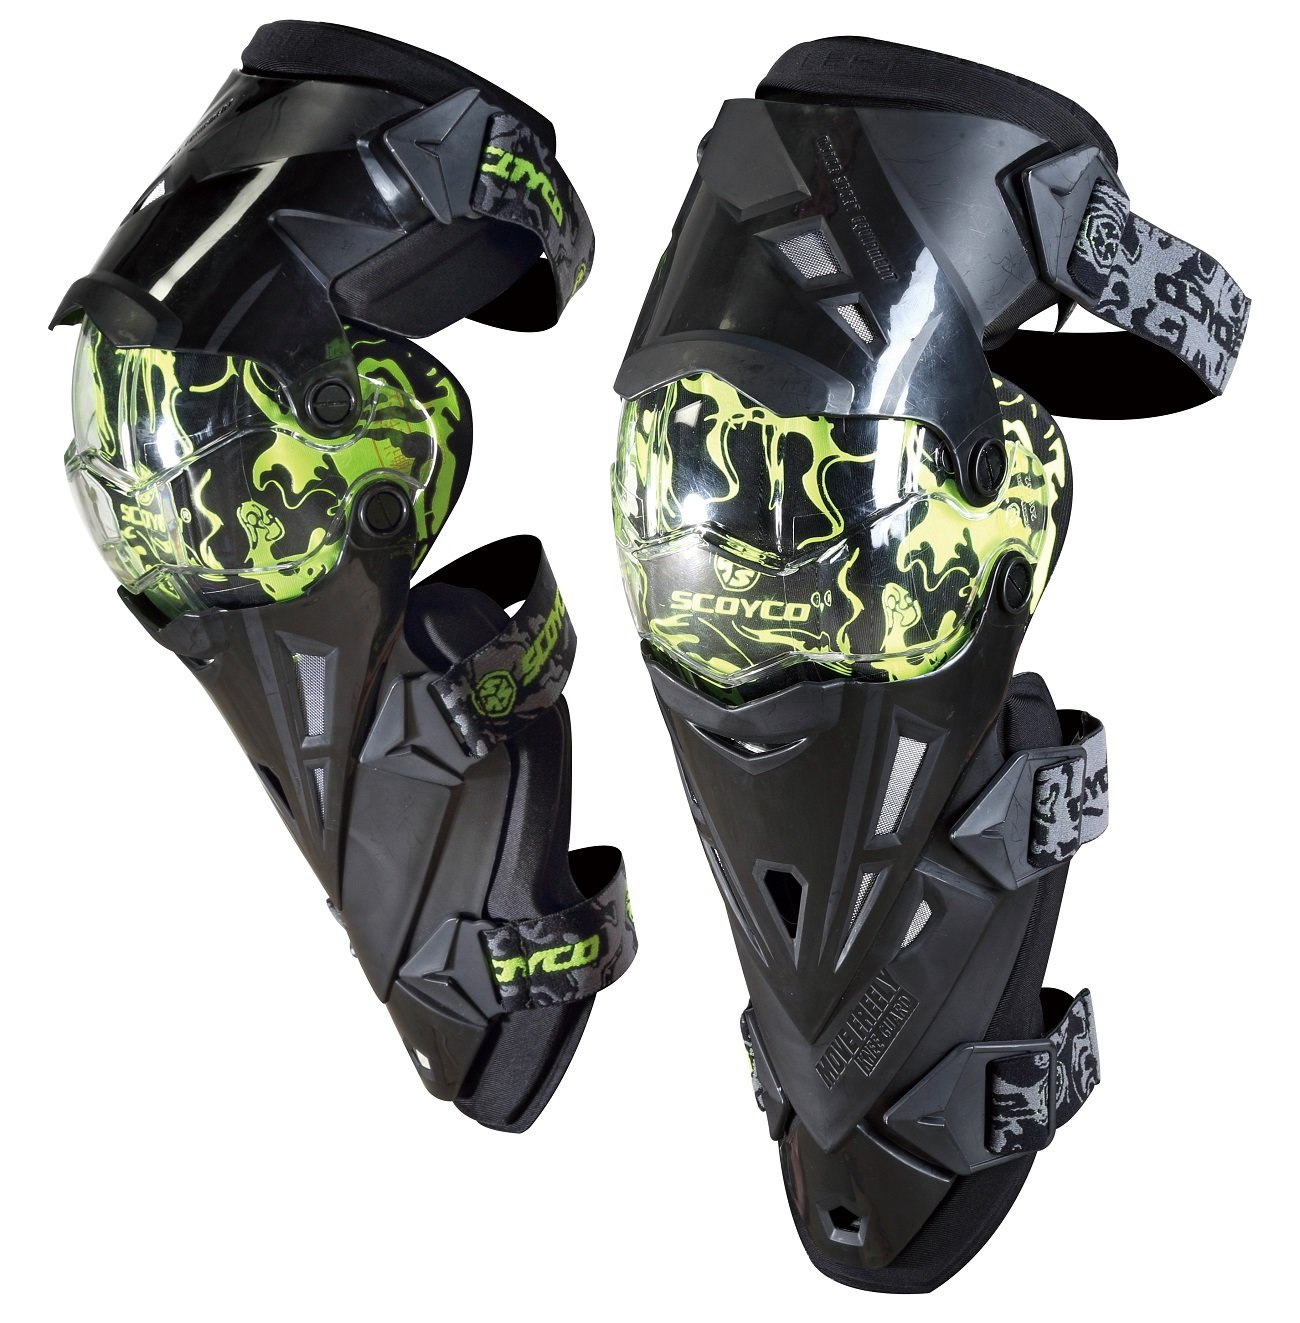 CRAZY AL'S SCOYCO K12(PRO) Motorcycle Knee and Shin Protector ATV Motocross Knee Pads Sports Scooter Motor-Racing Guard Safety Knee Pads (Green)